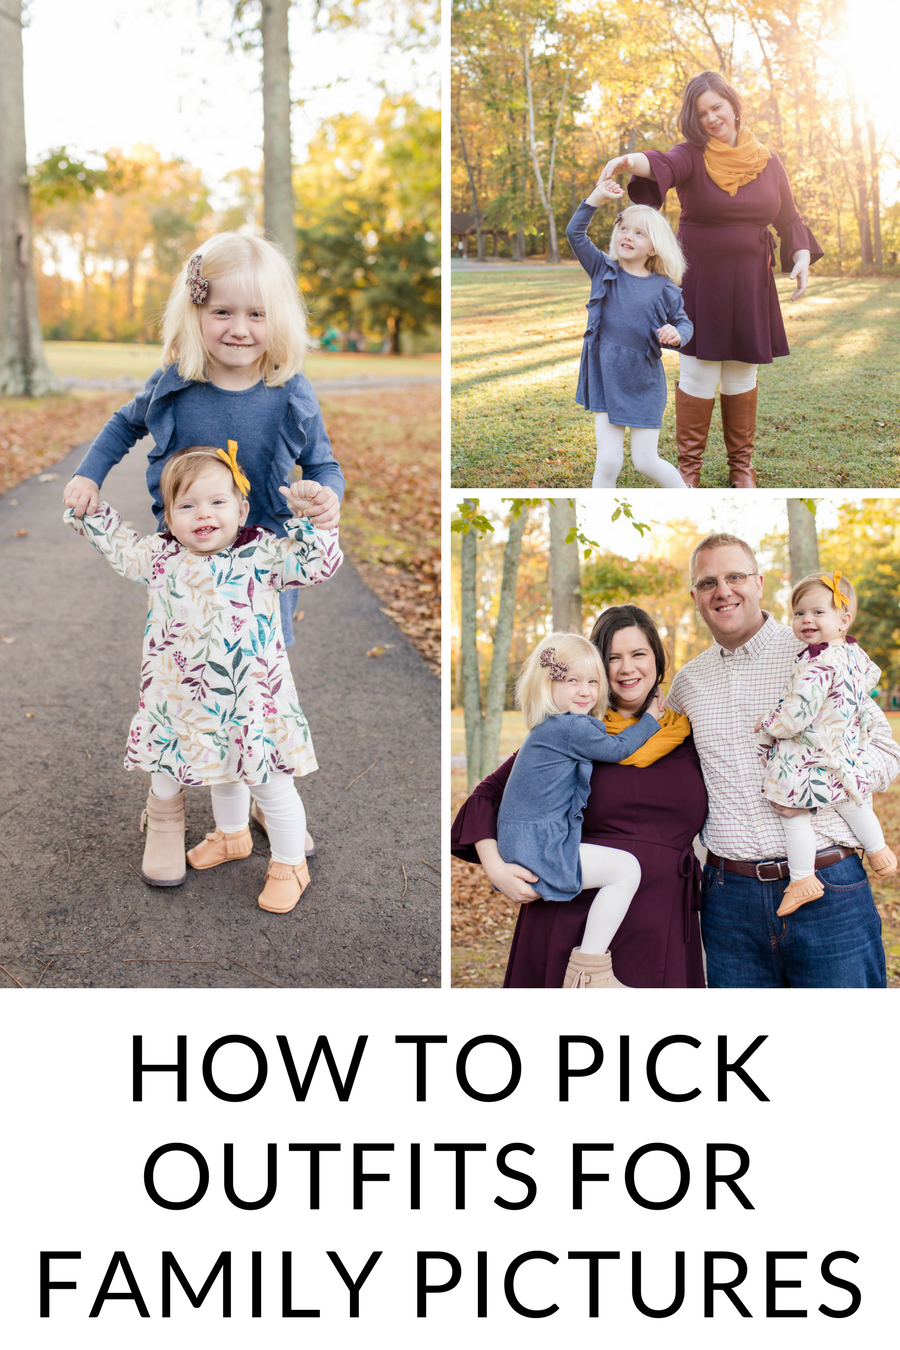 Stumped on how to pick outfits for your annual family pictures? Follow these steps to make it easy and get great, coordinated outfits every time. Your best family pictures ever could happen now! #familypictures #pictures #photography #familyphotos